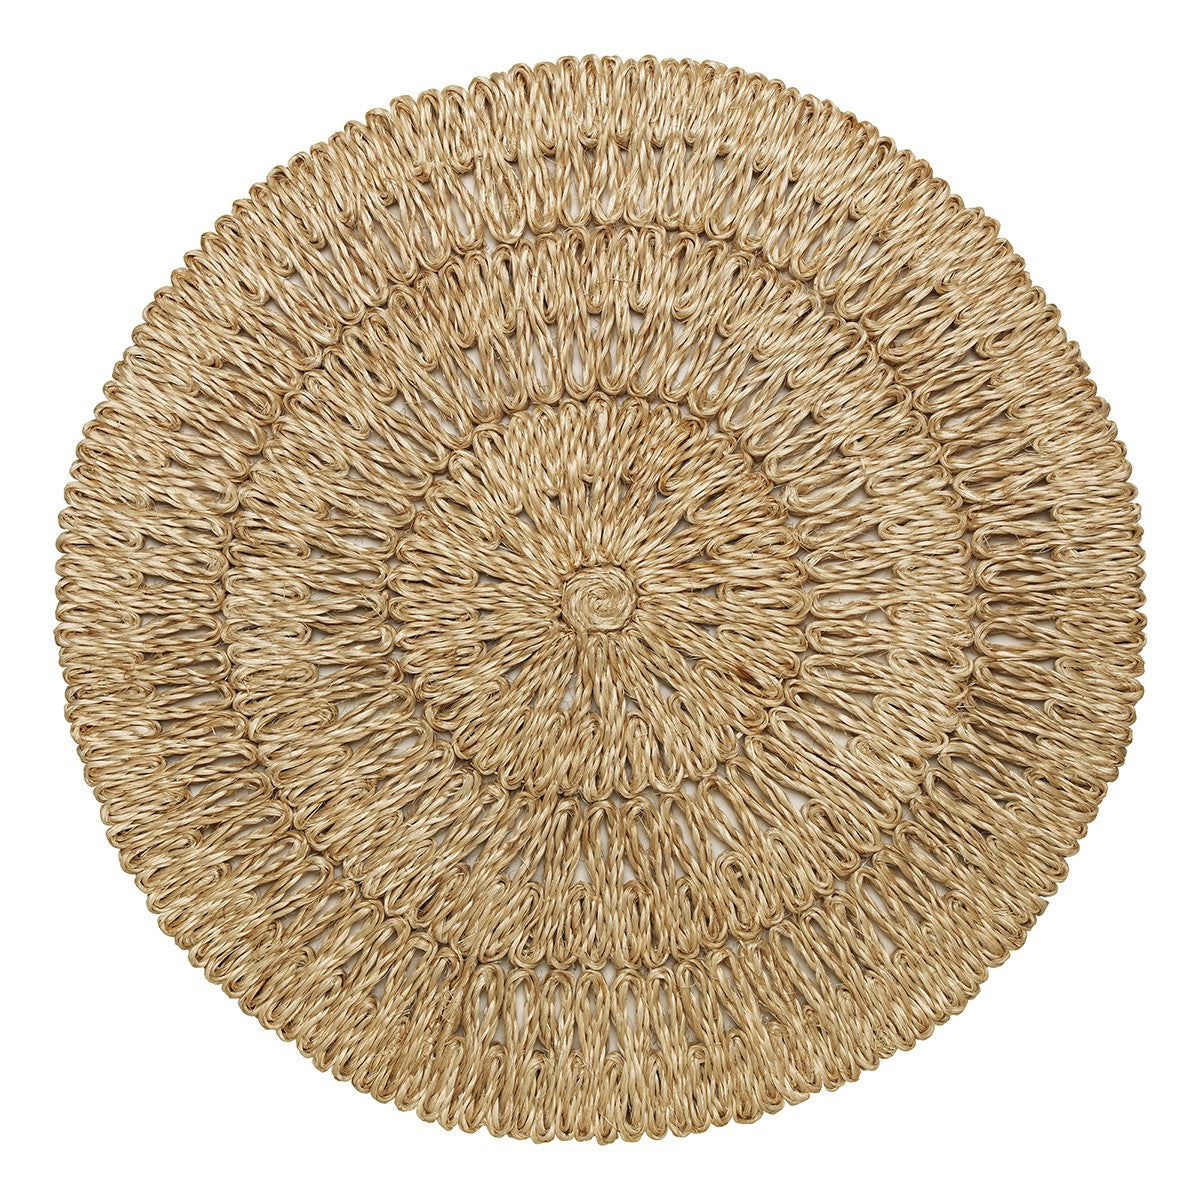 Straw Loop Natural Placemat